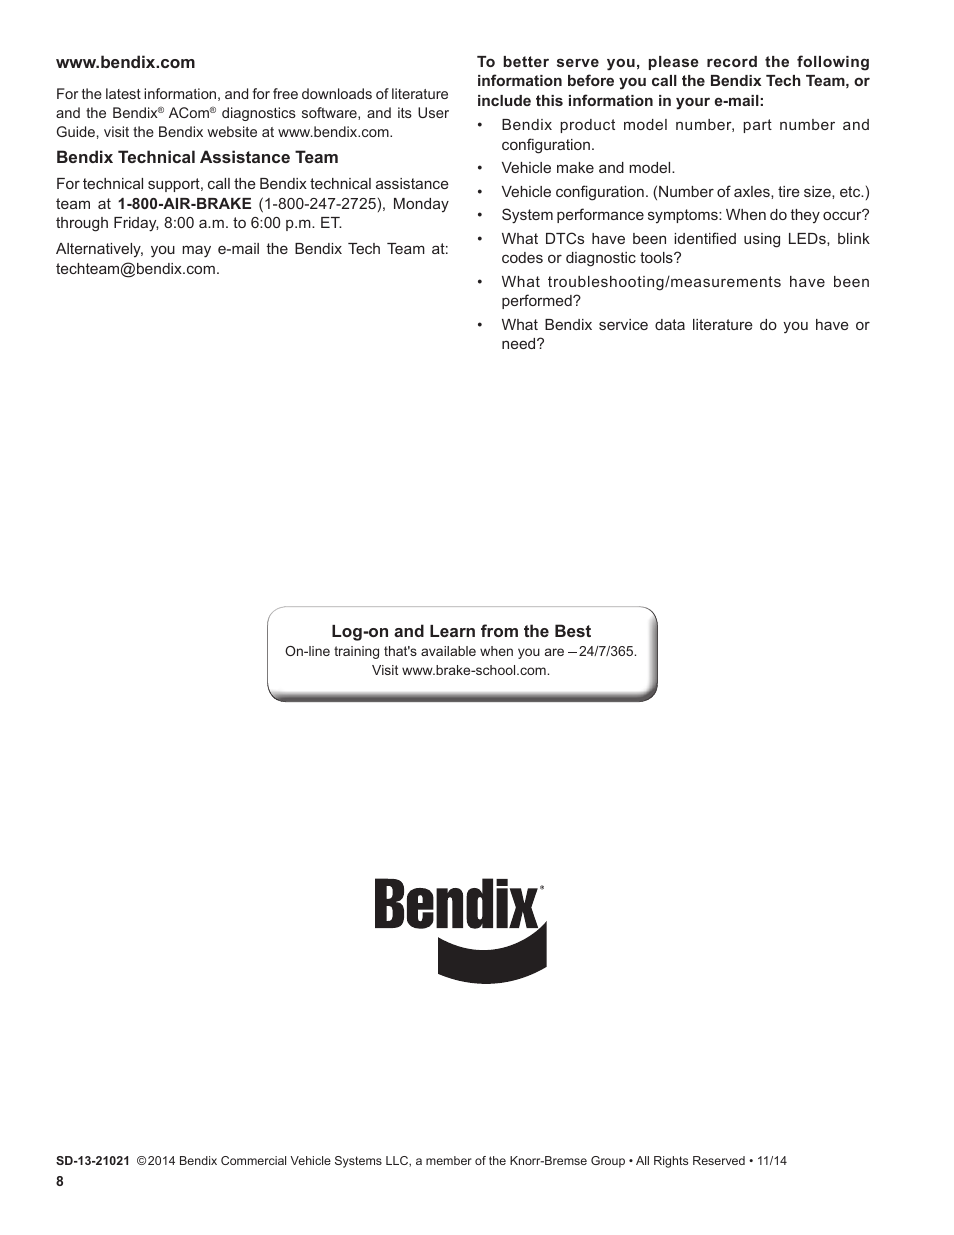 Bendix Commercial Vehicle Systems eTrac Automated Air Pressure Transfer  System User Manual | Page 8 / 8